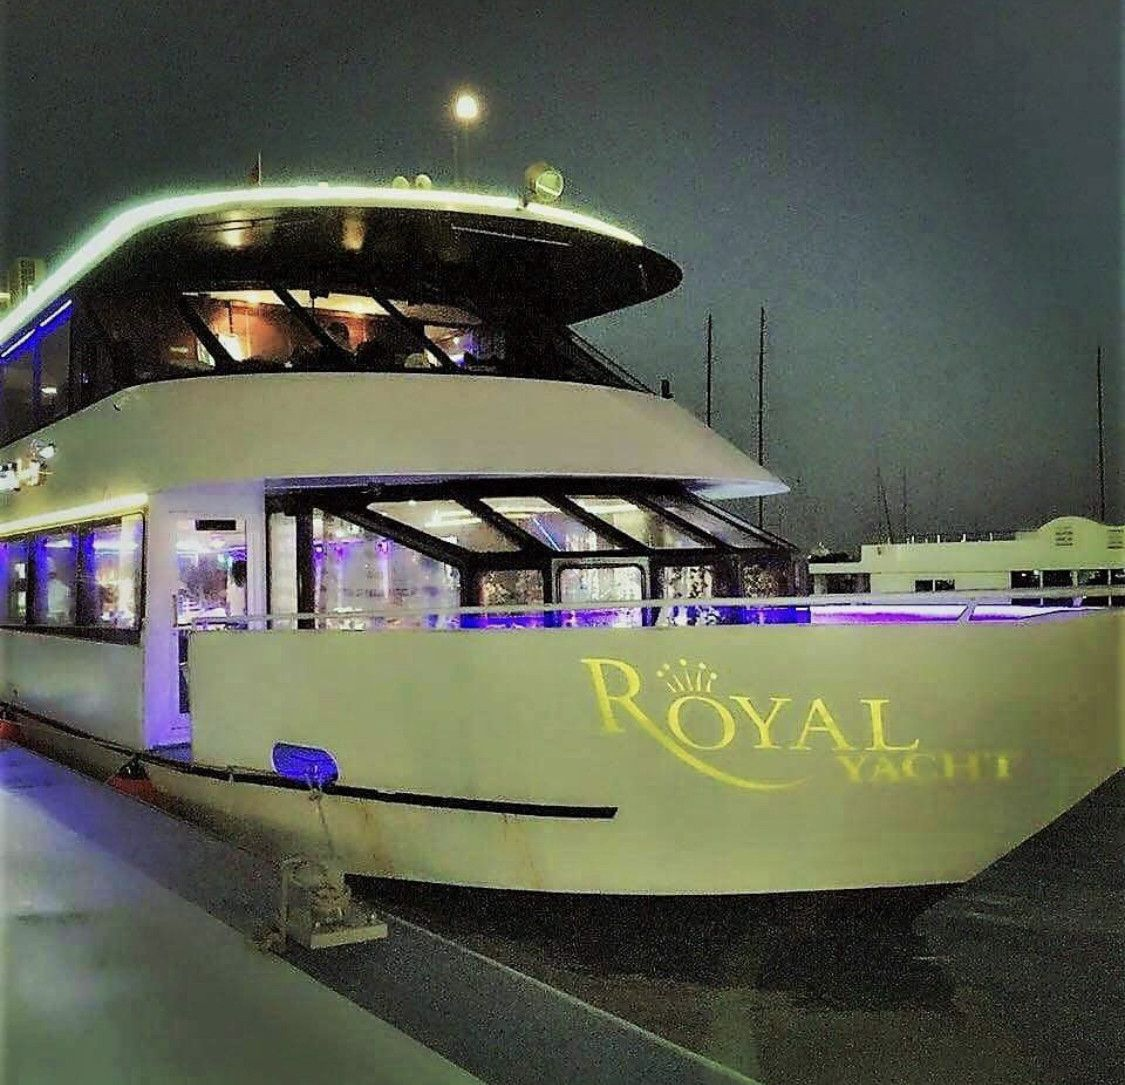 Royal Yacht Restaurant 2